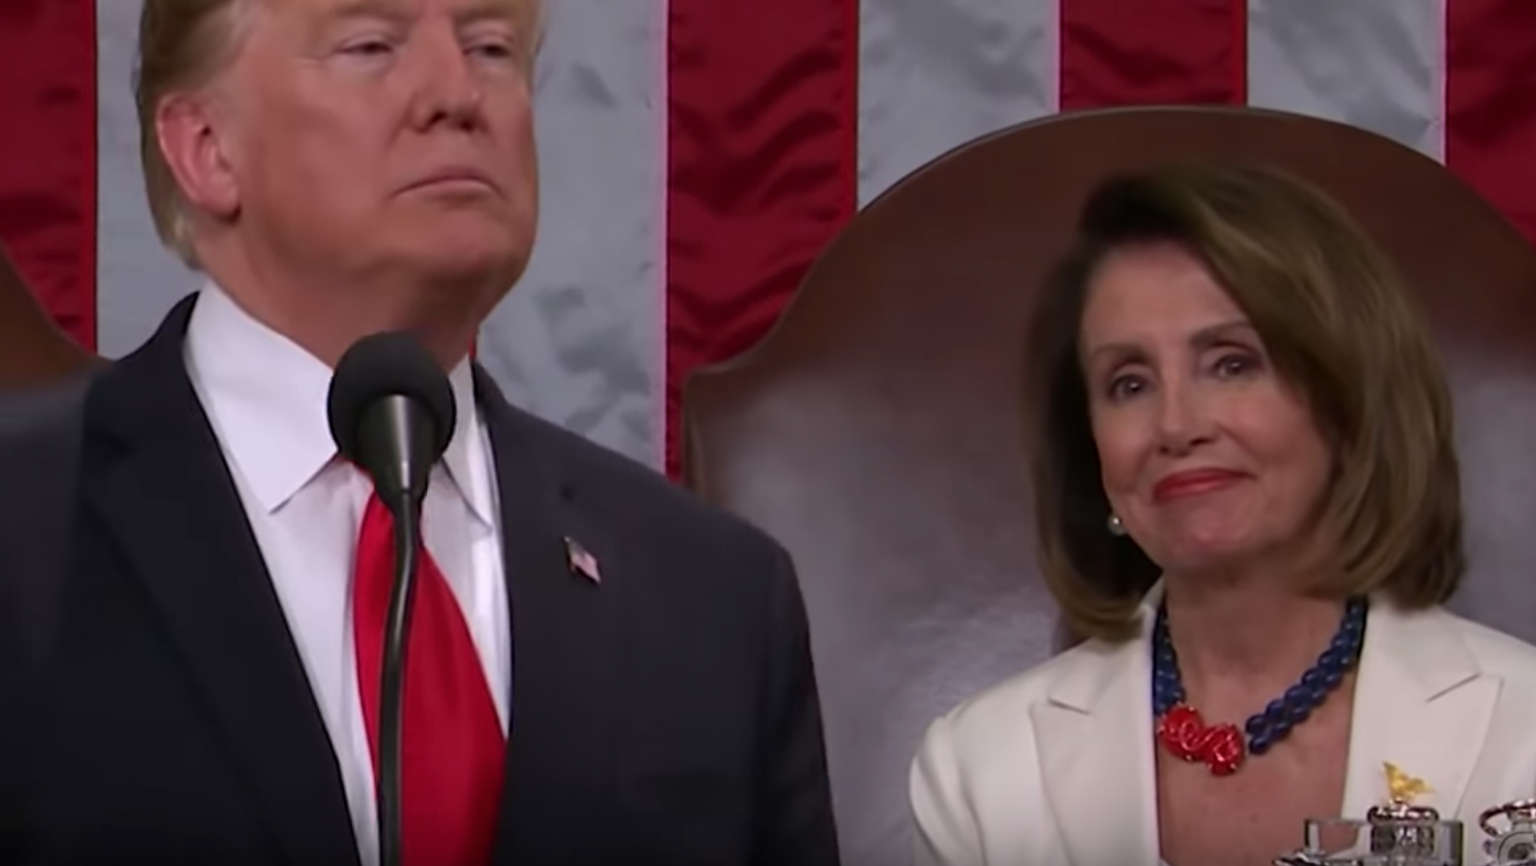 Politicians snuck amnesty for thousands of illegal immigrants into spending bill that President Trump signed